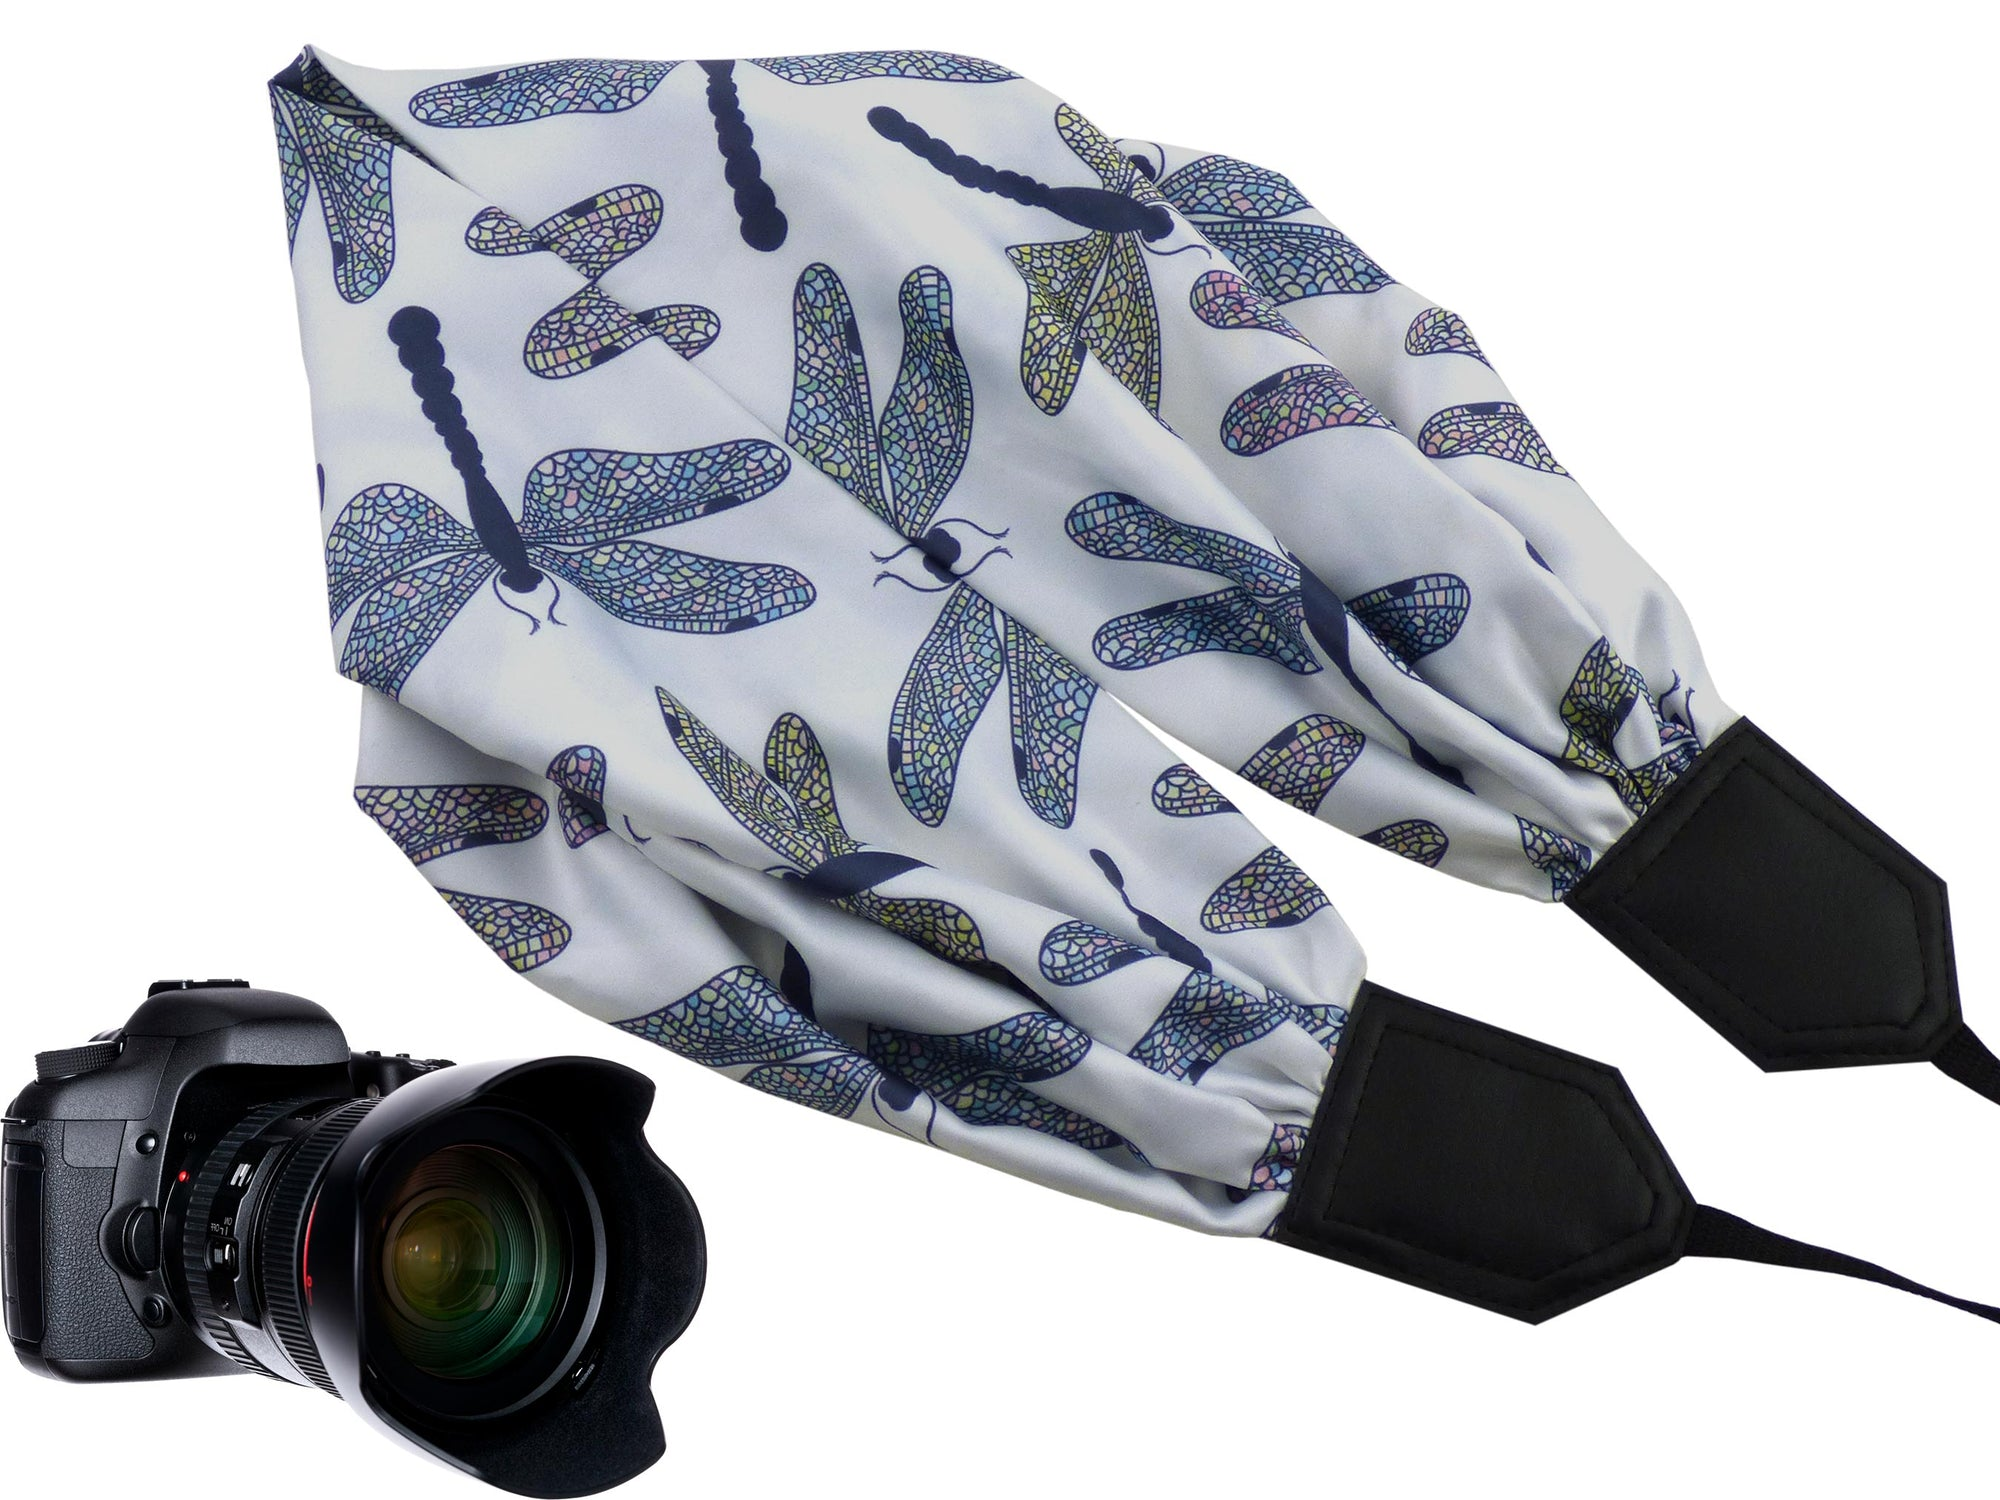 Scarf camera strap with dragonflies by InTePro